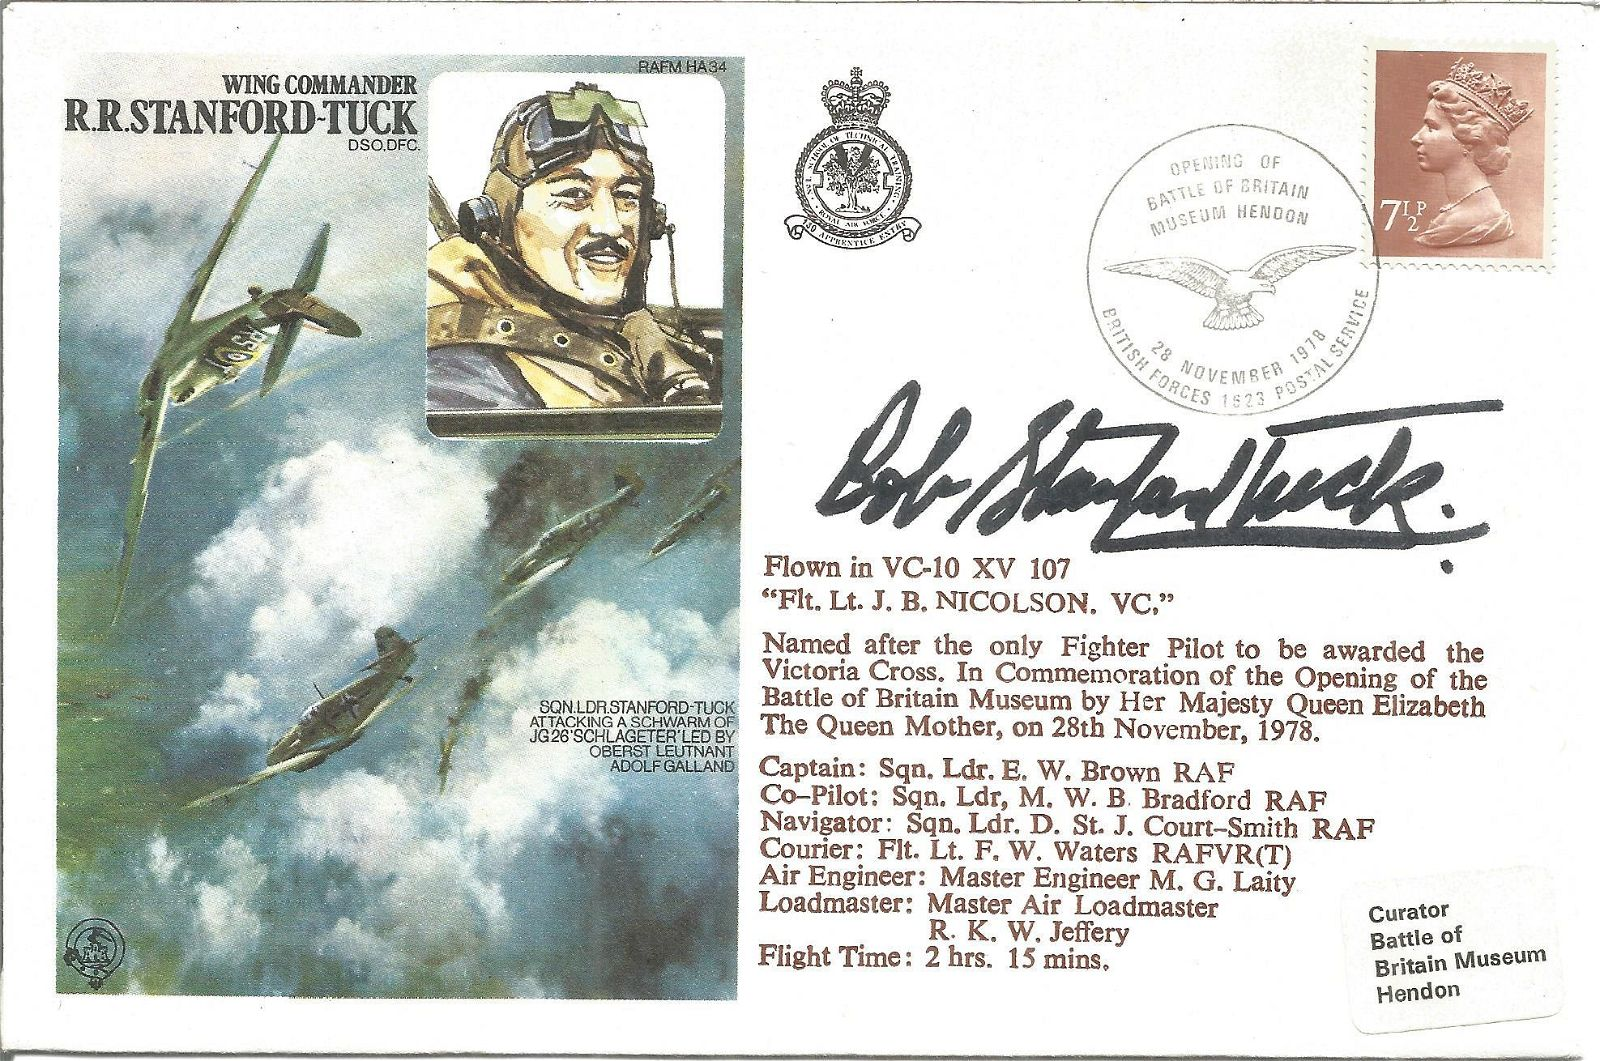 WW2 fighter ace Robert Stanford Tuck DSO DFC signed on